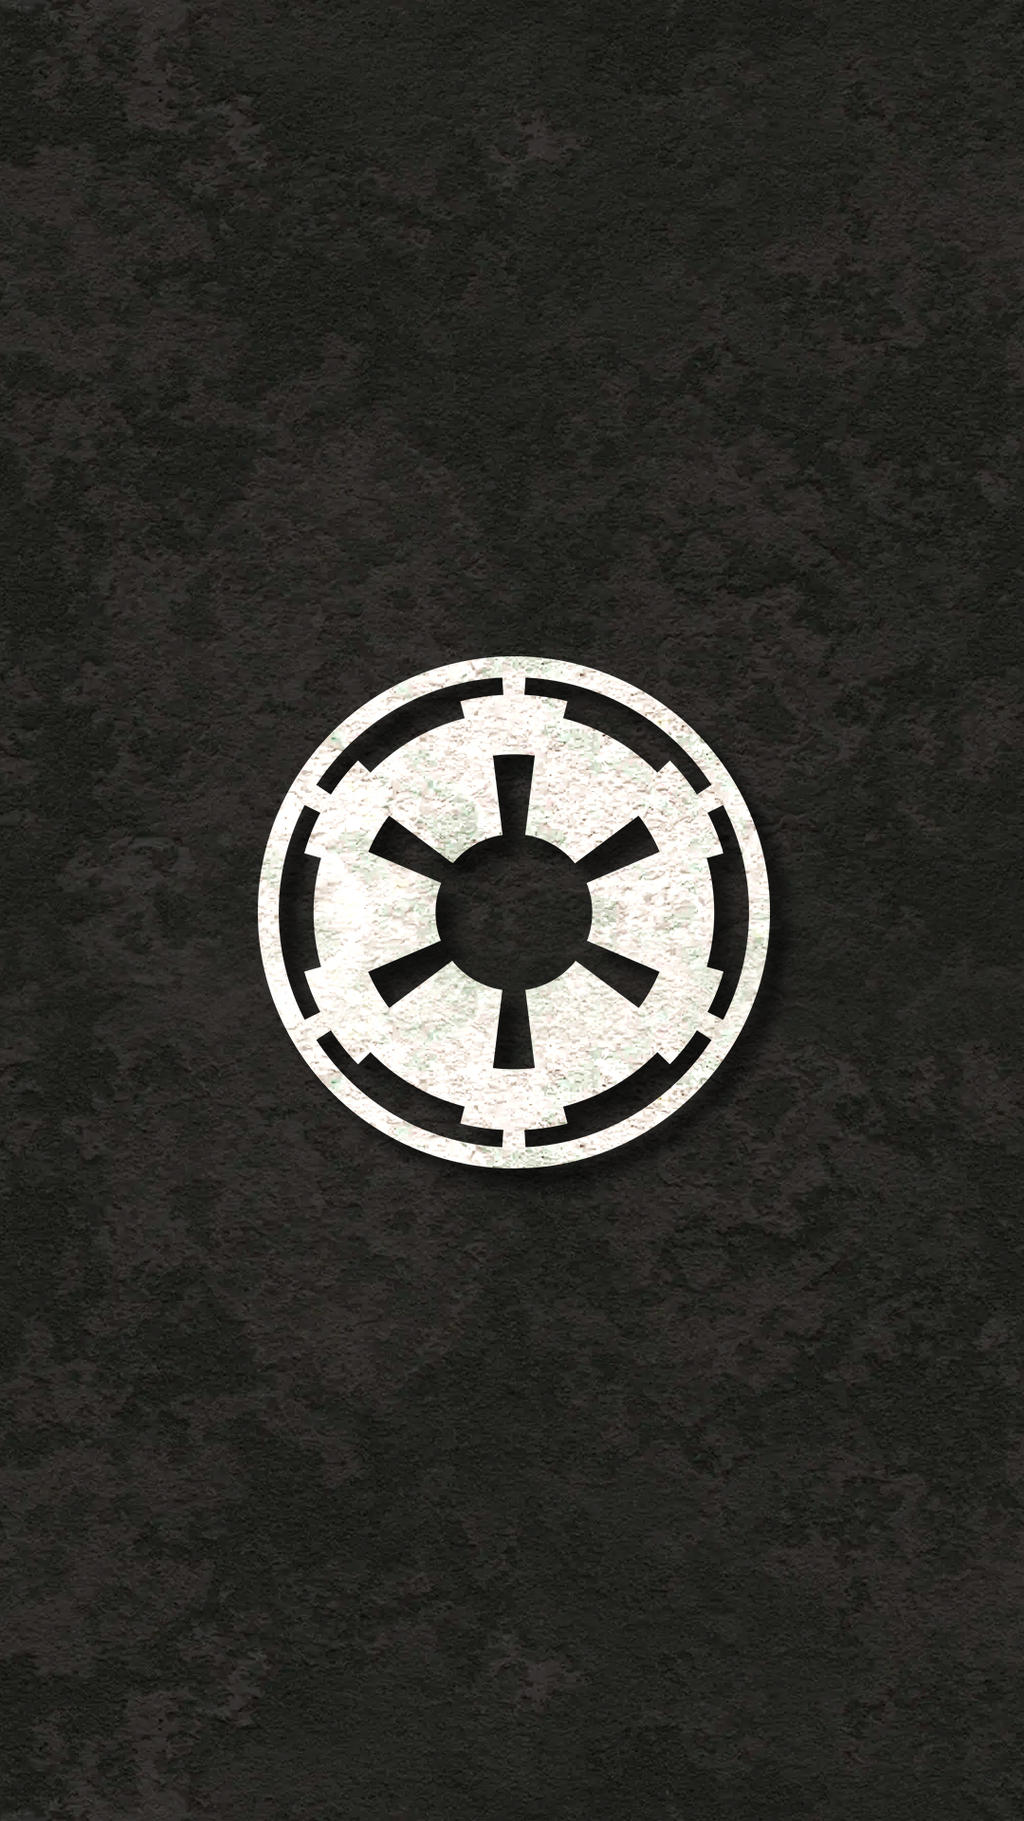 Galactic Empire Star Wars Wallpaper By Shiro525 On Deviantart